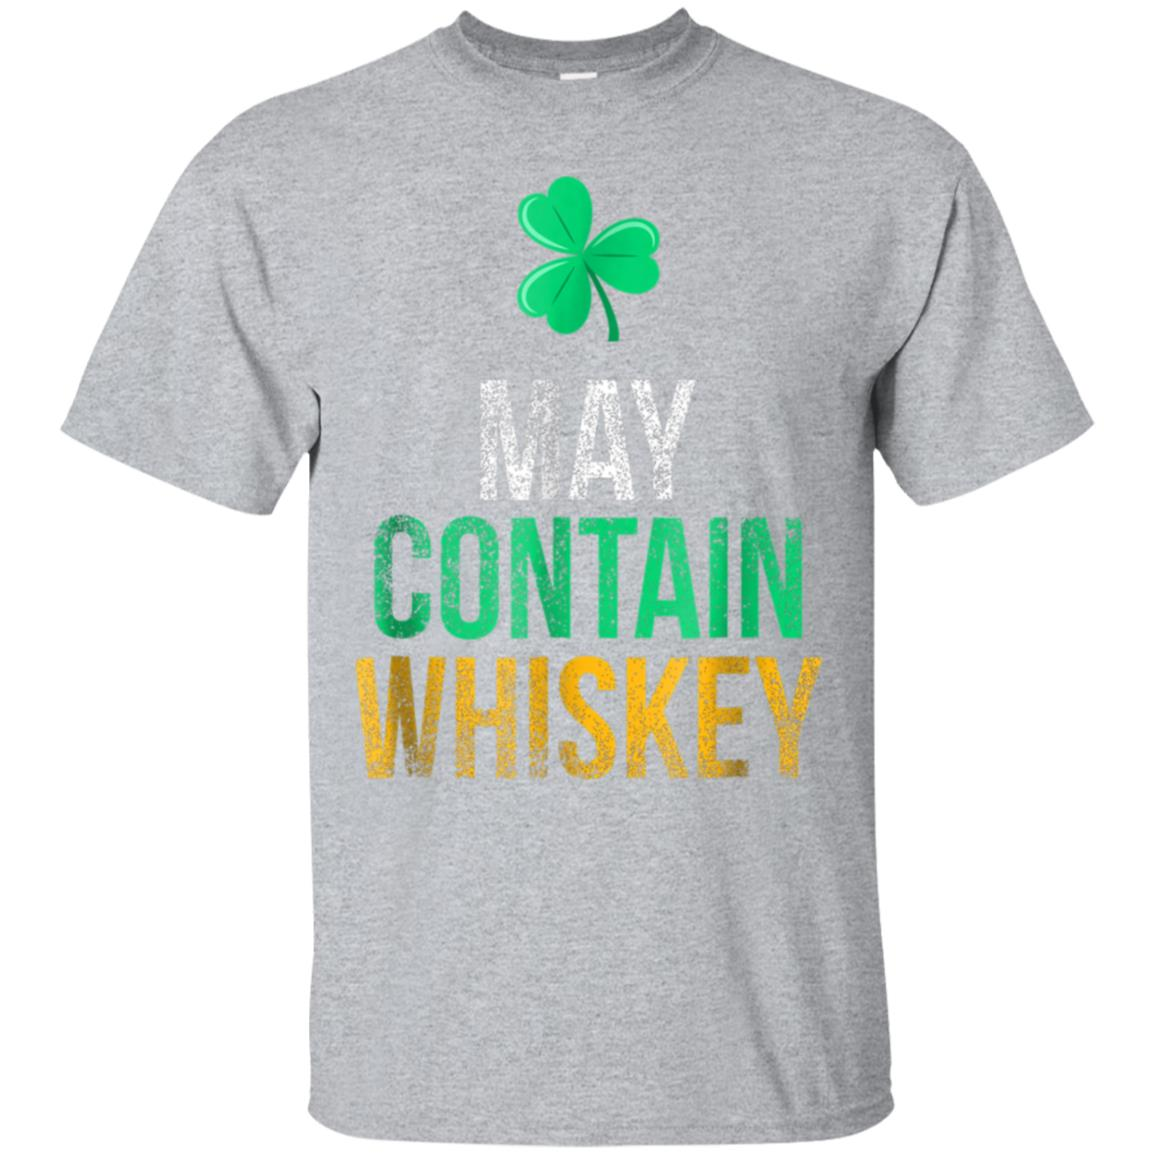 May Contain Whiskey Funny Irish Whiskey Lover T-Shirt 99promocode